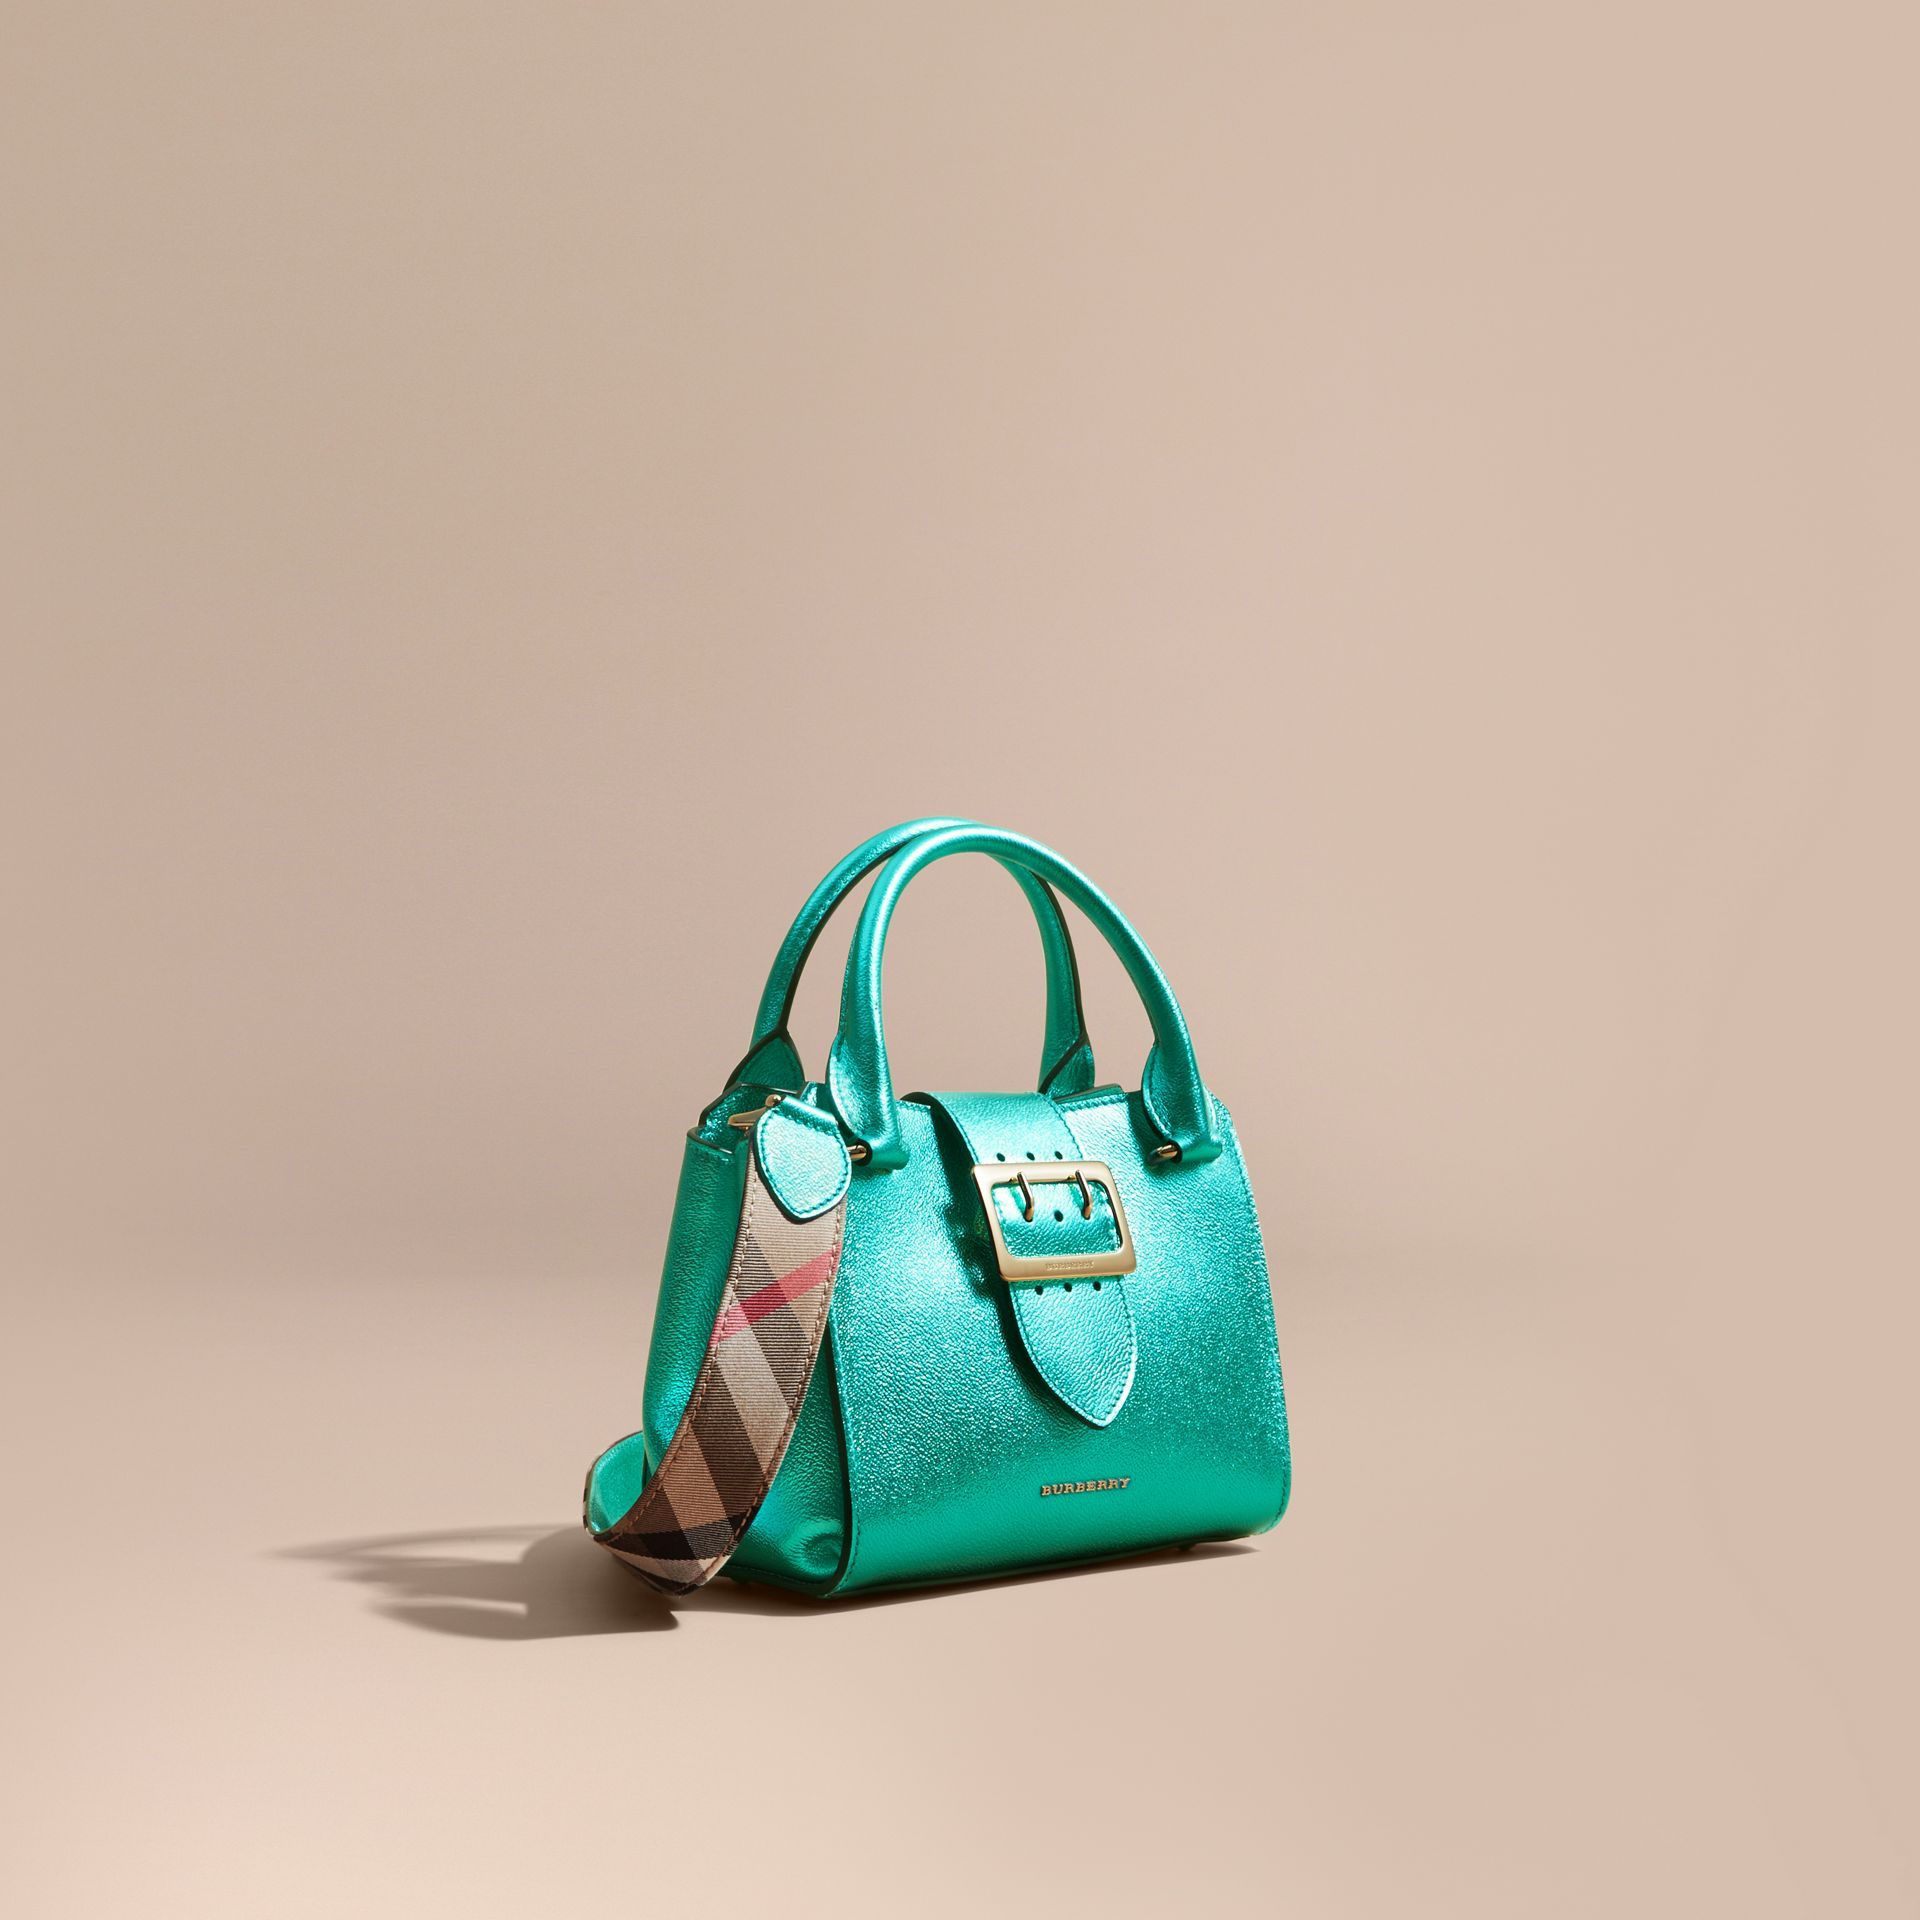 The Small Buckle Tote in Metallic Leather in Emerald - gallery image 1